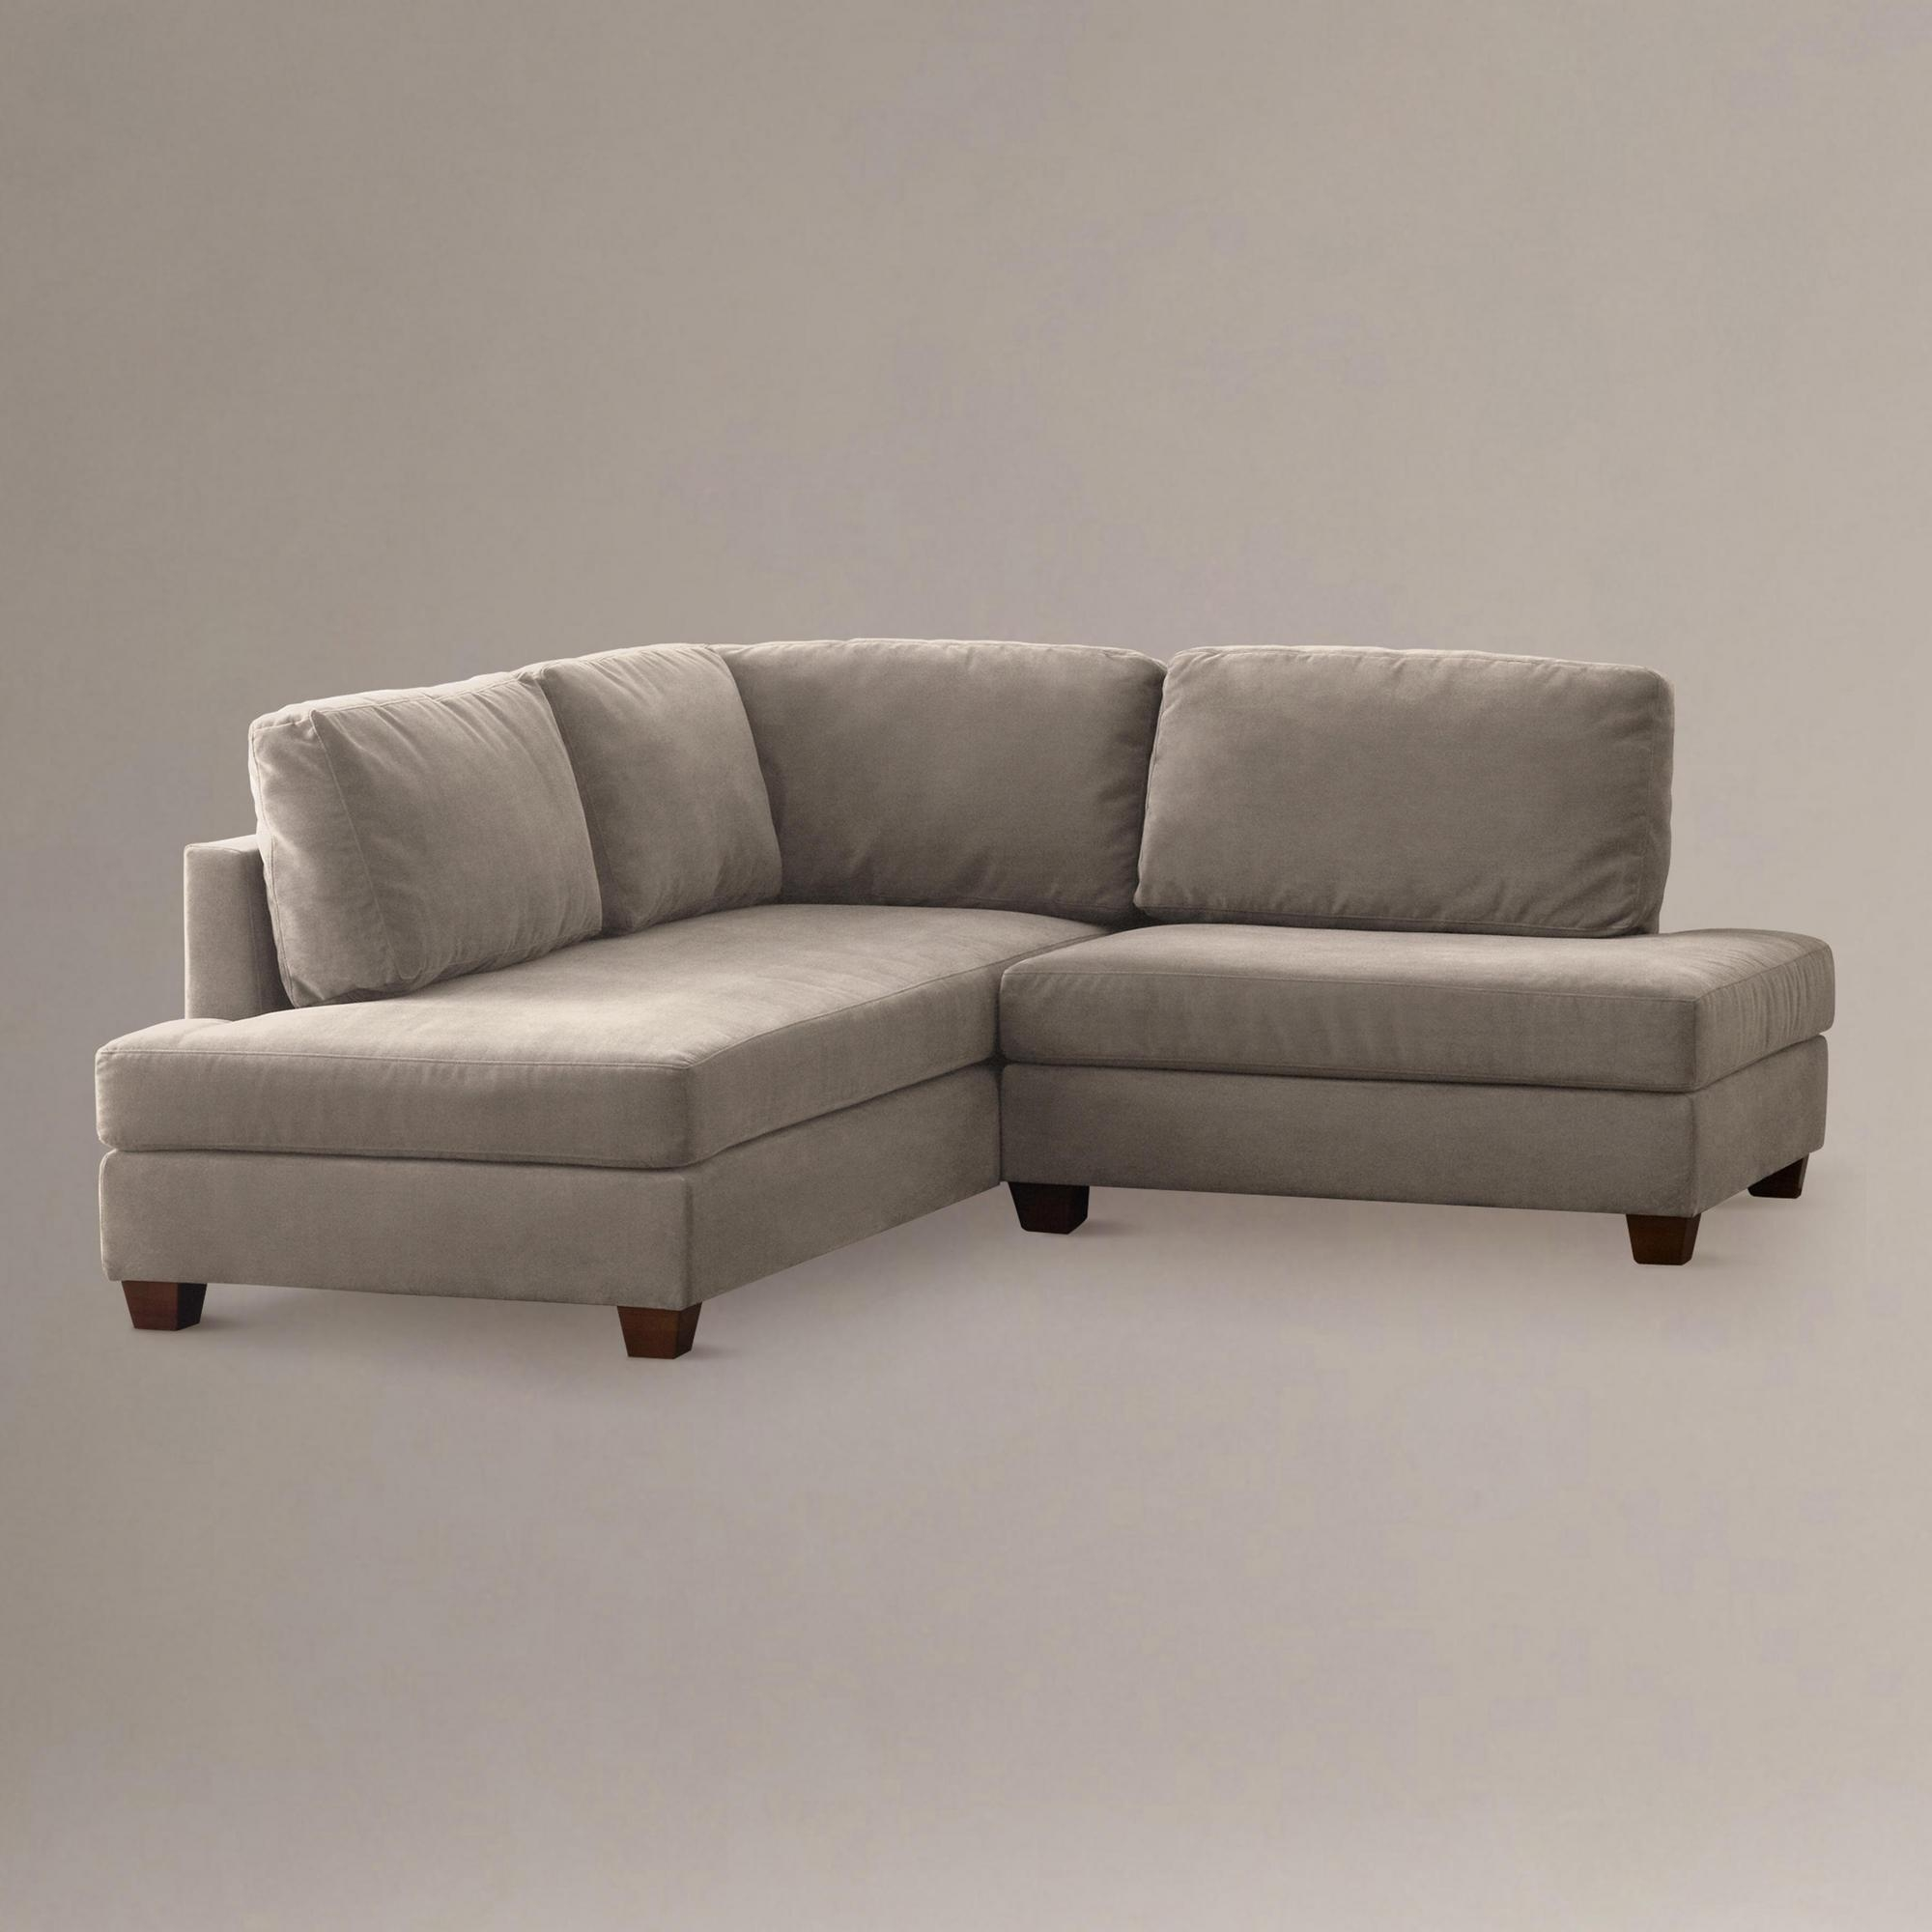 Sofas Winnipeg – Leather Sectional Sofa For Tiny Sofas (Image 15 of 20)